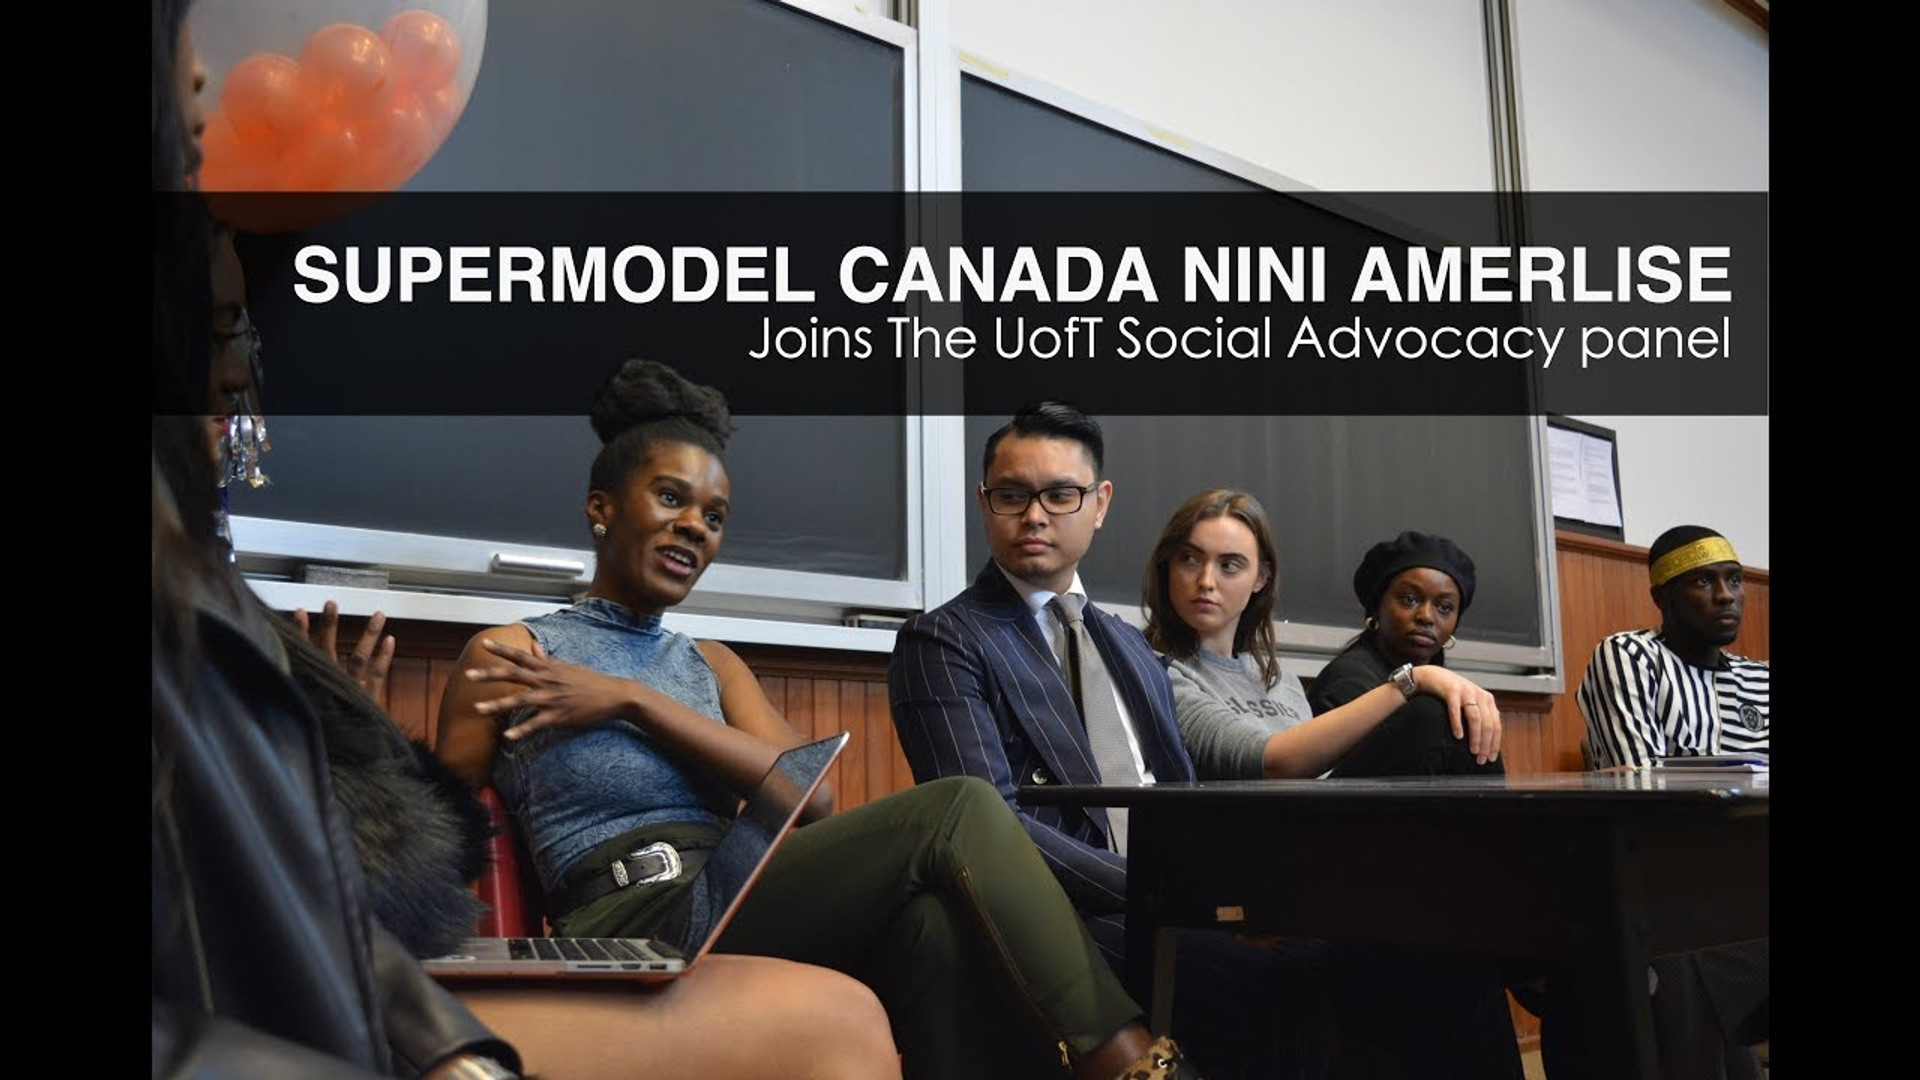 Supermodel Canada Nini Amerlise joins University of Toronto - Social Advocacy panel